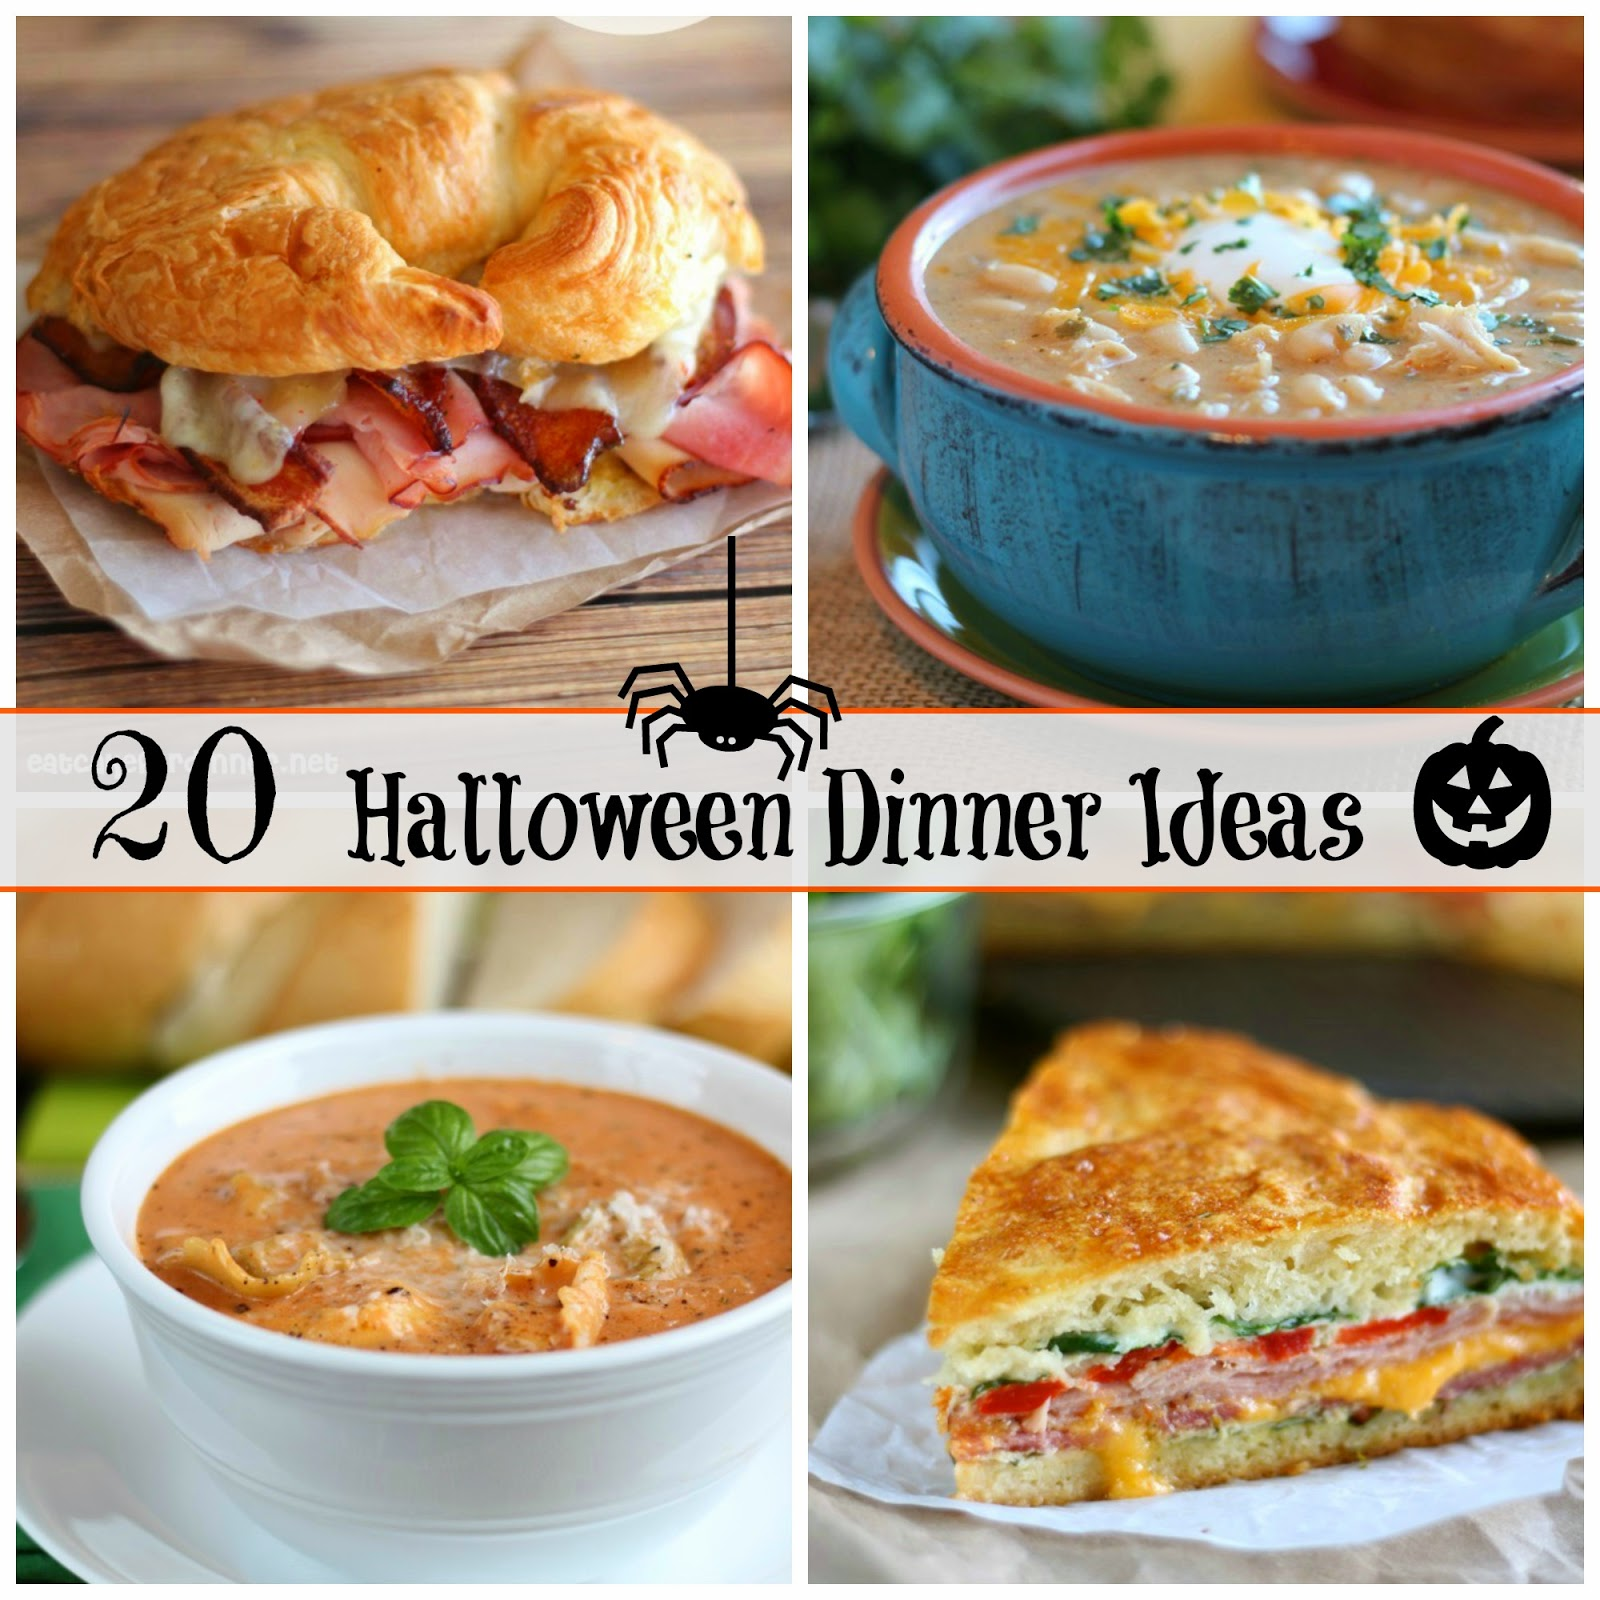 Eat Cake For Dinner: 20 Halloween Dinner Ideas to Warm you Up